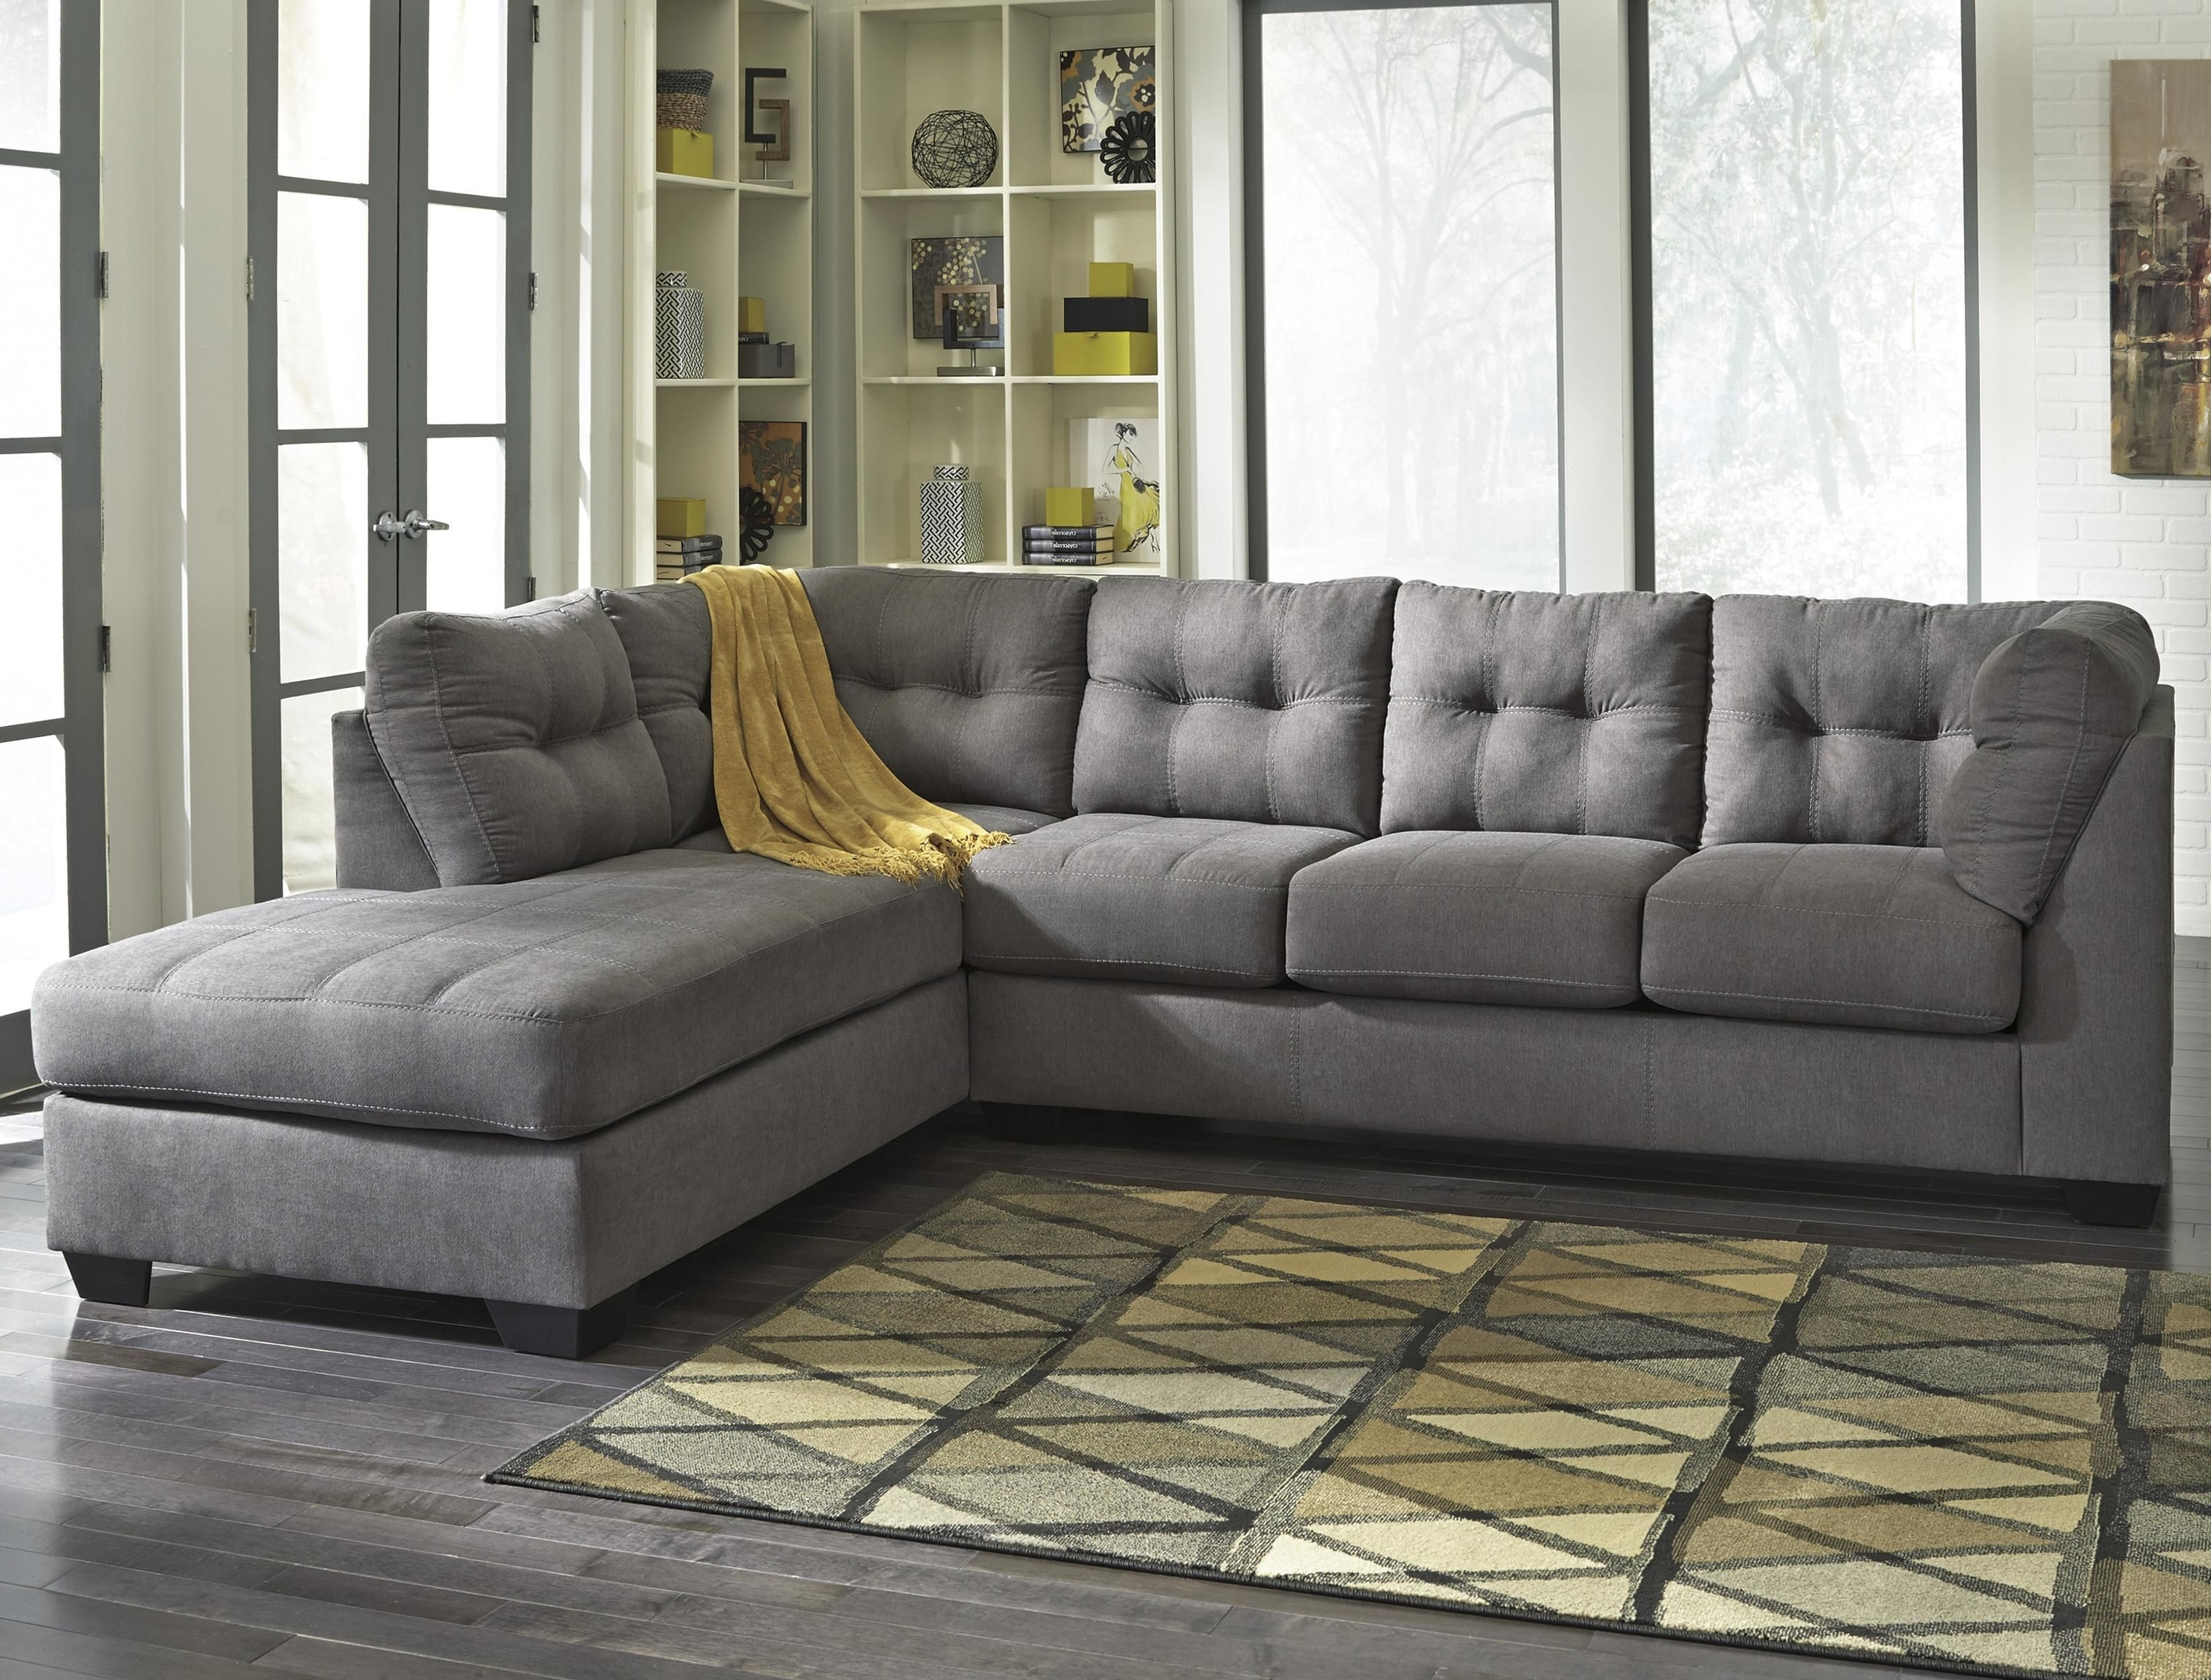 Well Known 2 Piece Sectional W/ Sleeper Sofa & Chaise Maier – Charcoal 2 Pertaining To Sectional Sofas At Buffalo Ny (View 20 of 20)